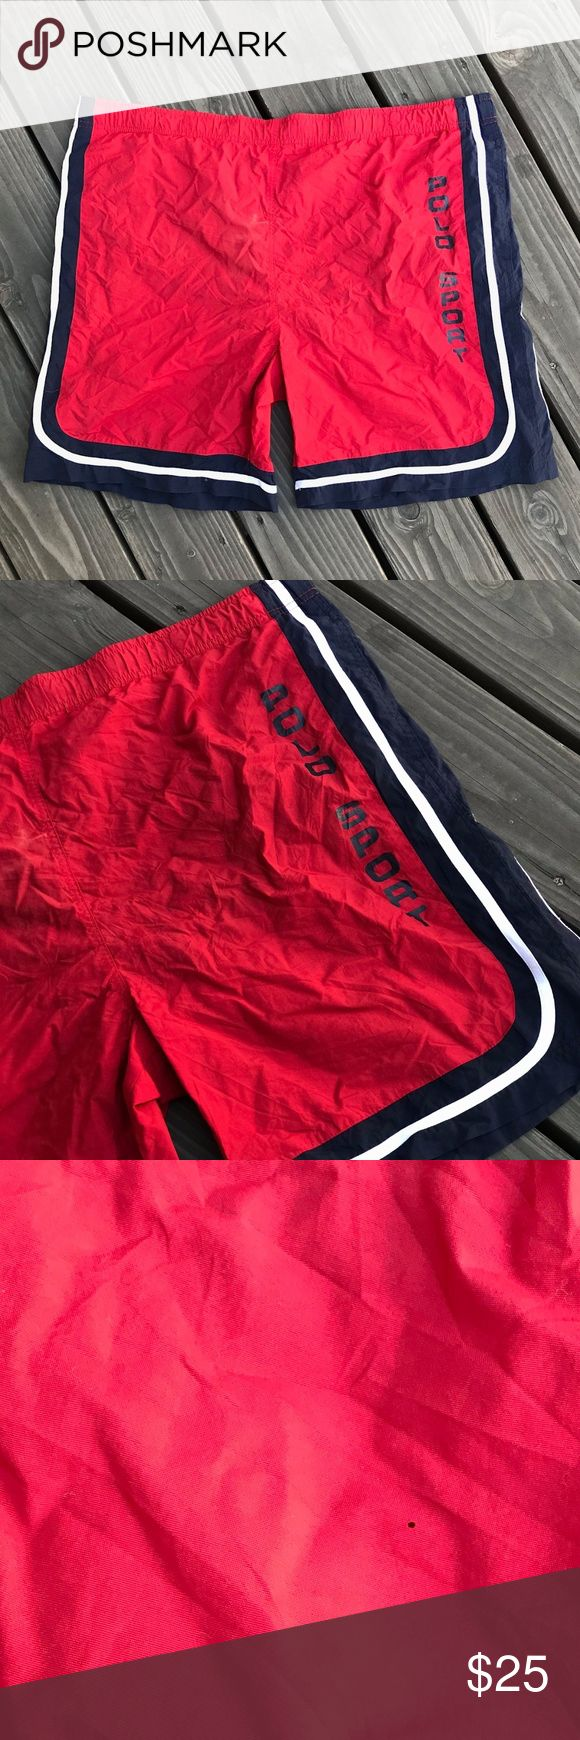 VINTAGE 90's POLO SPORT TRUNKS RED MEN'S XXL RARE Details: Great condition! Item has a few minor defects, please see photos. Still in great wearable condition. Red shorts with navy Polo Sport logo print on left left. White & navy stripes. 2 front pockets. Back pocket with velcro closing.  MEASUREMENTS FURNISHED UPON REQUEST!  *Ships from US.  *Same or next day shipping.  *First-Class US shipping (delivery in 1 to 3 business days).  *First-Class International shipping (delivery in 7 to 21…